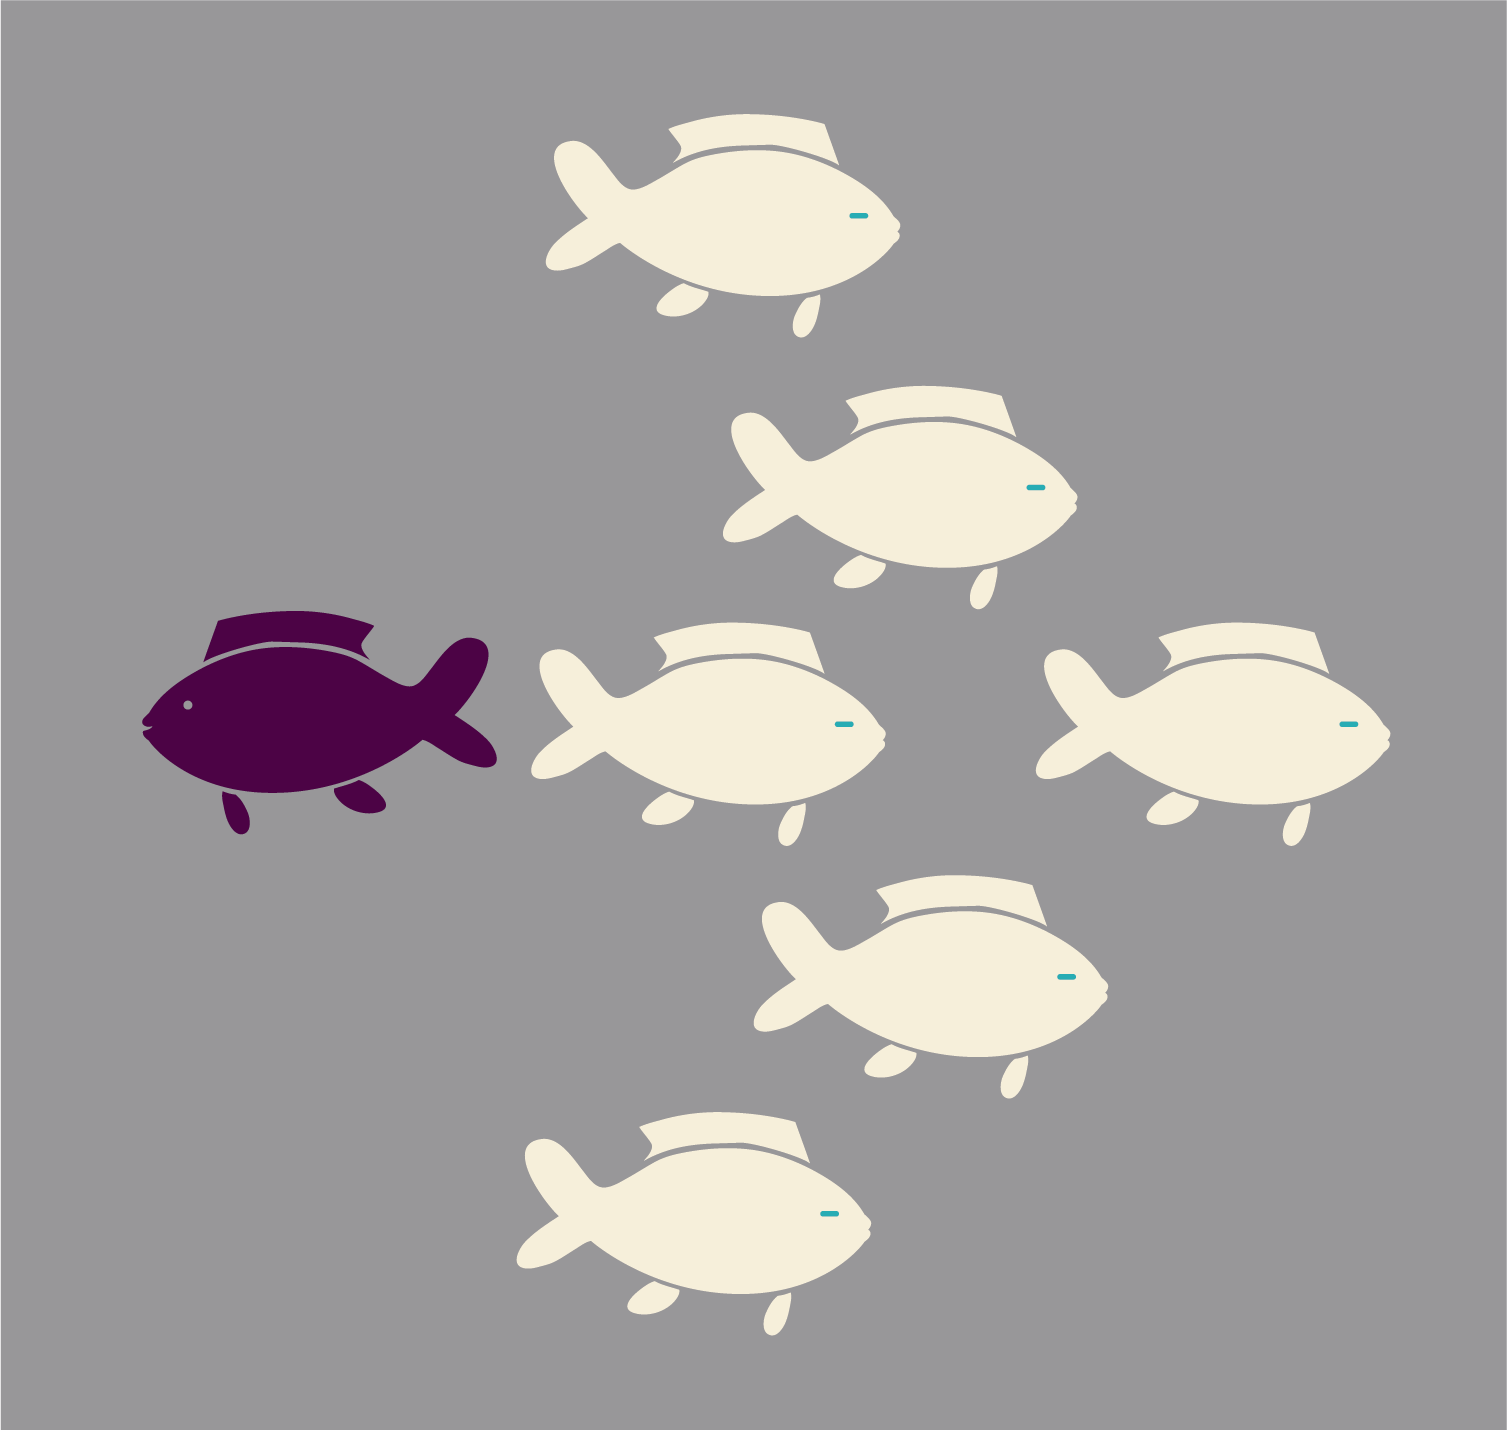 fishes.png